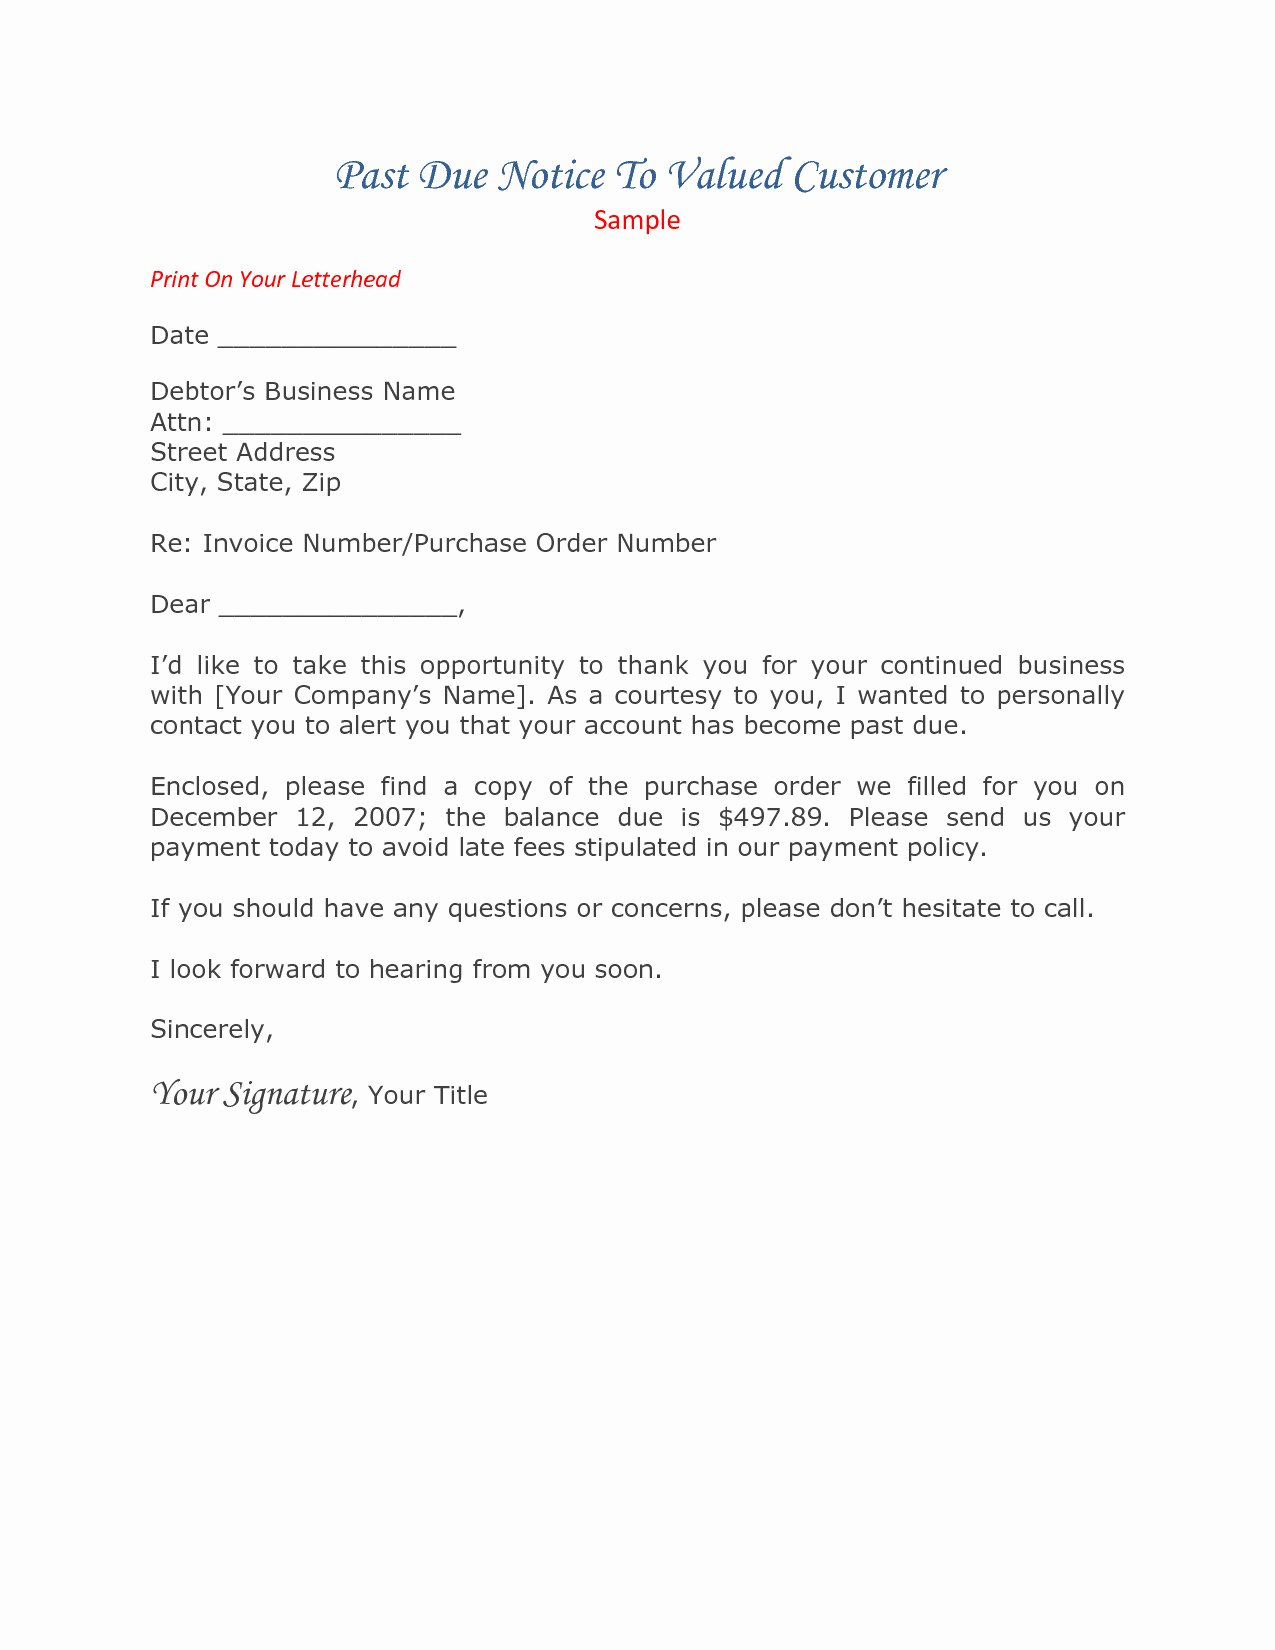 Medical Collection Letter Final Notice New Past Due Invoice Letter Template Collection